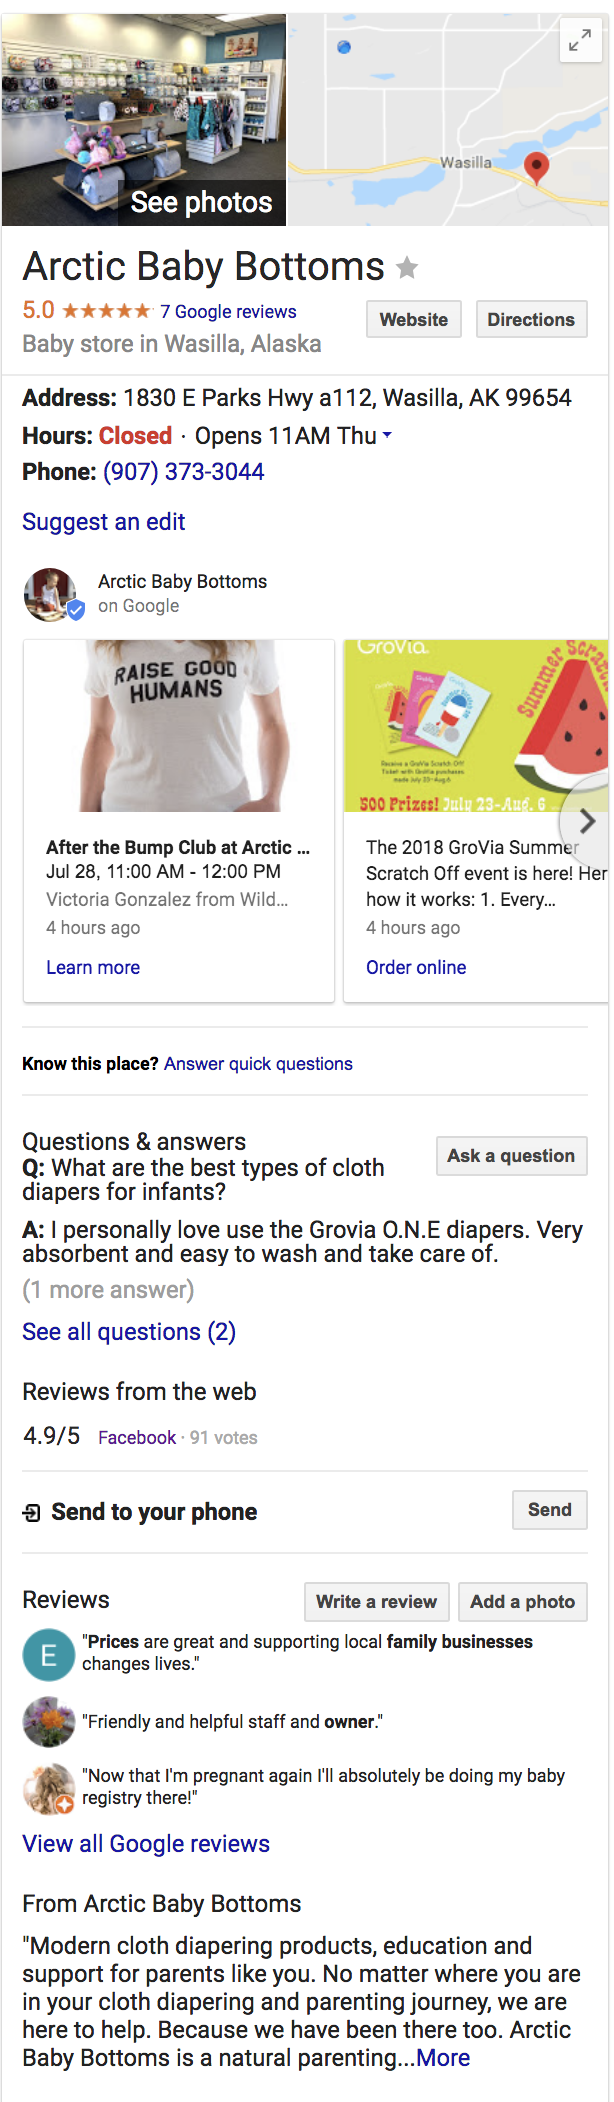 Google My Business Examples (Arctic Baby Bottoms)